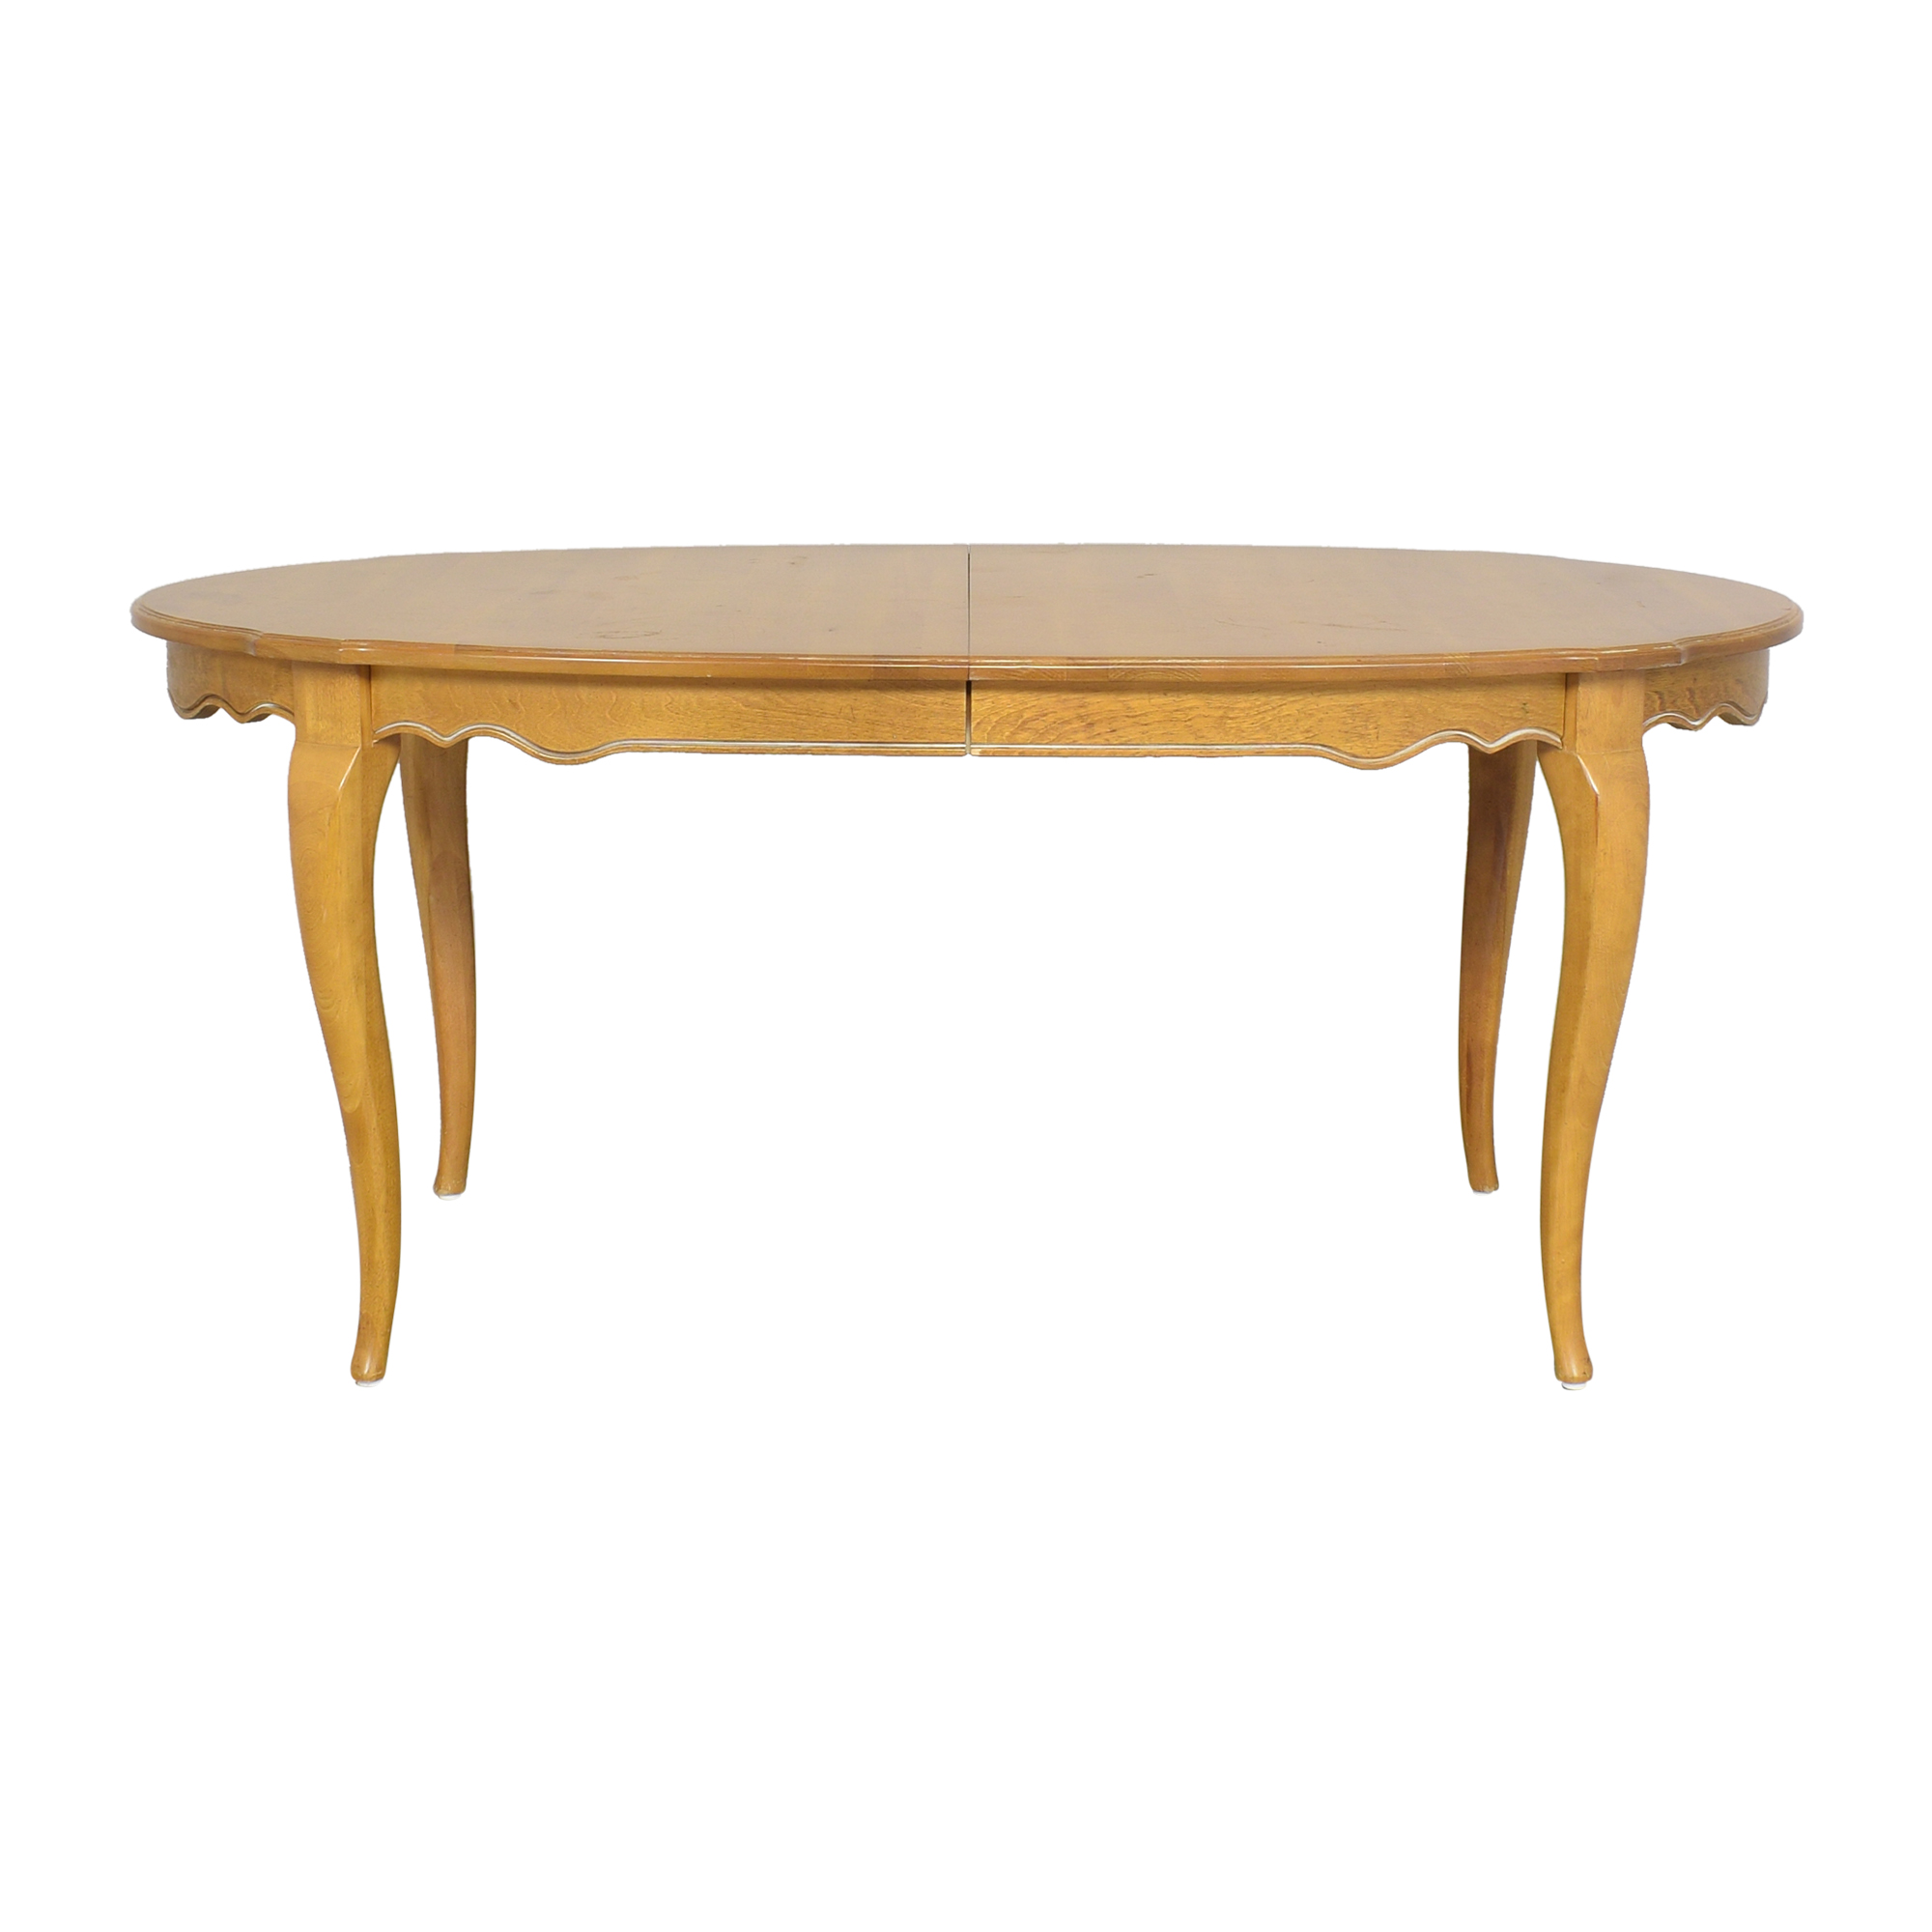 Ethan Allen Country French Extendable Dining Table sale